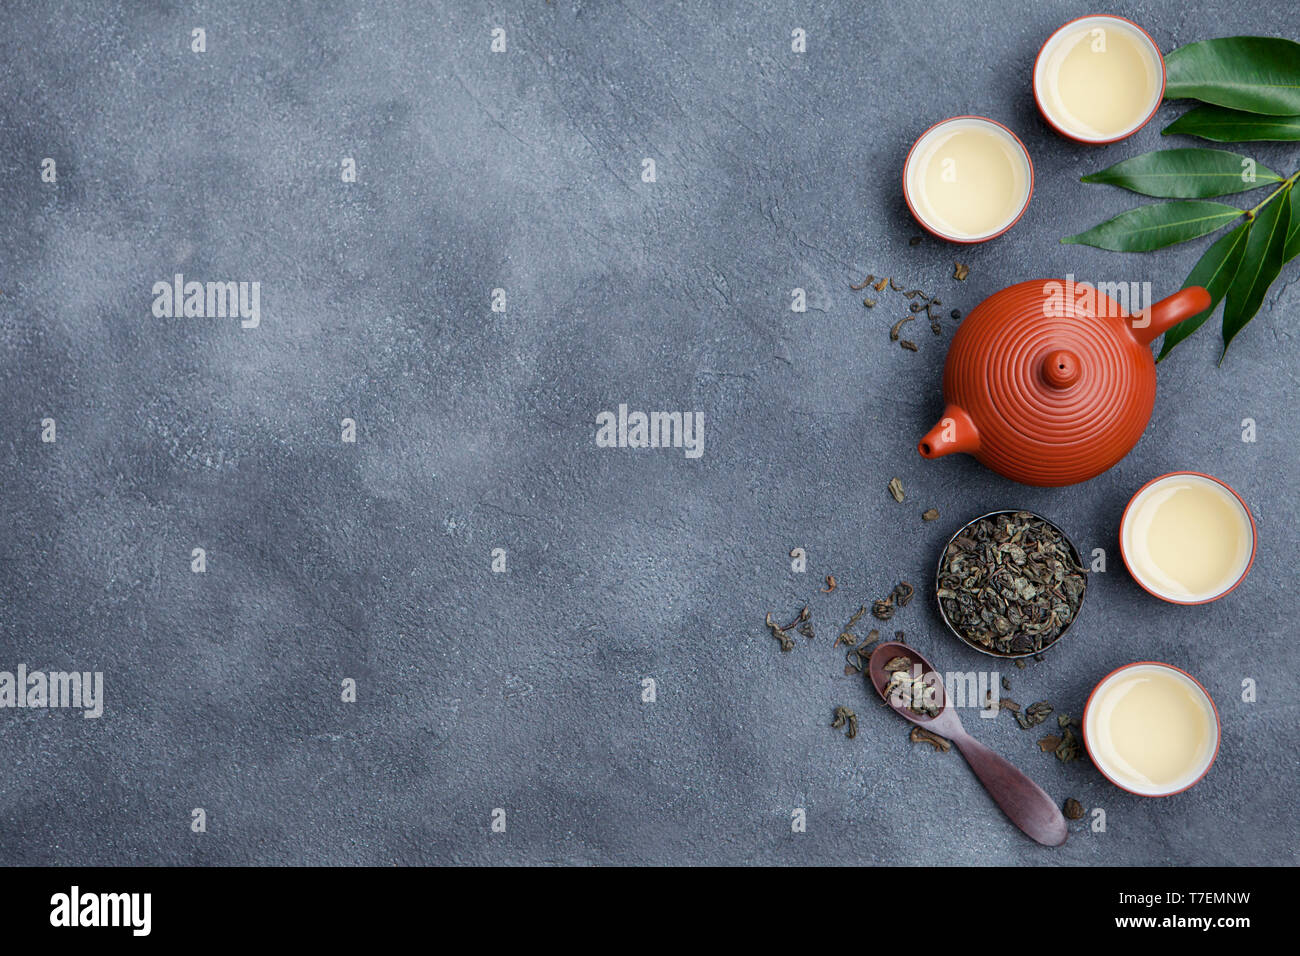 Green tea in tea pot and chawan bowls, cups on slate background. Top view. Copy space. Stock Photo